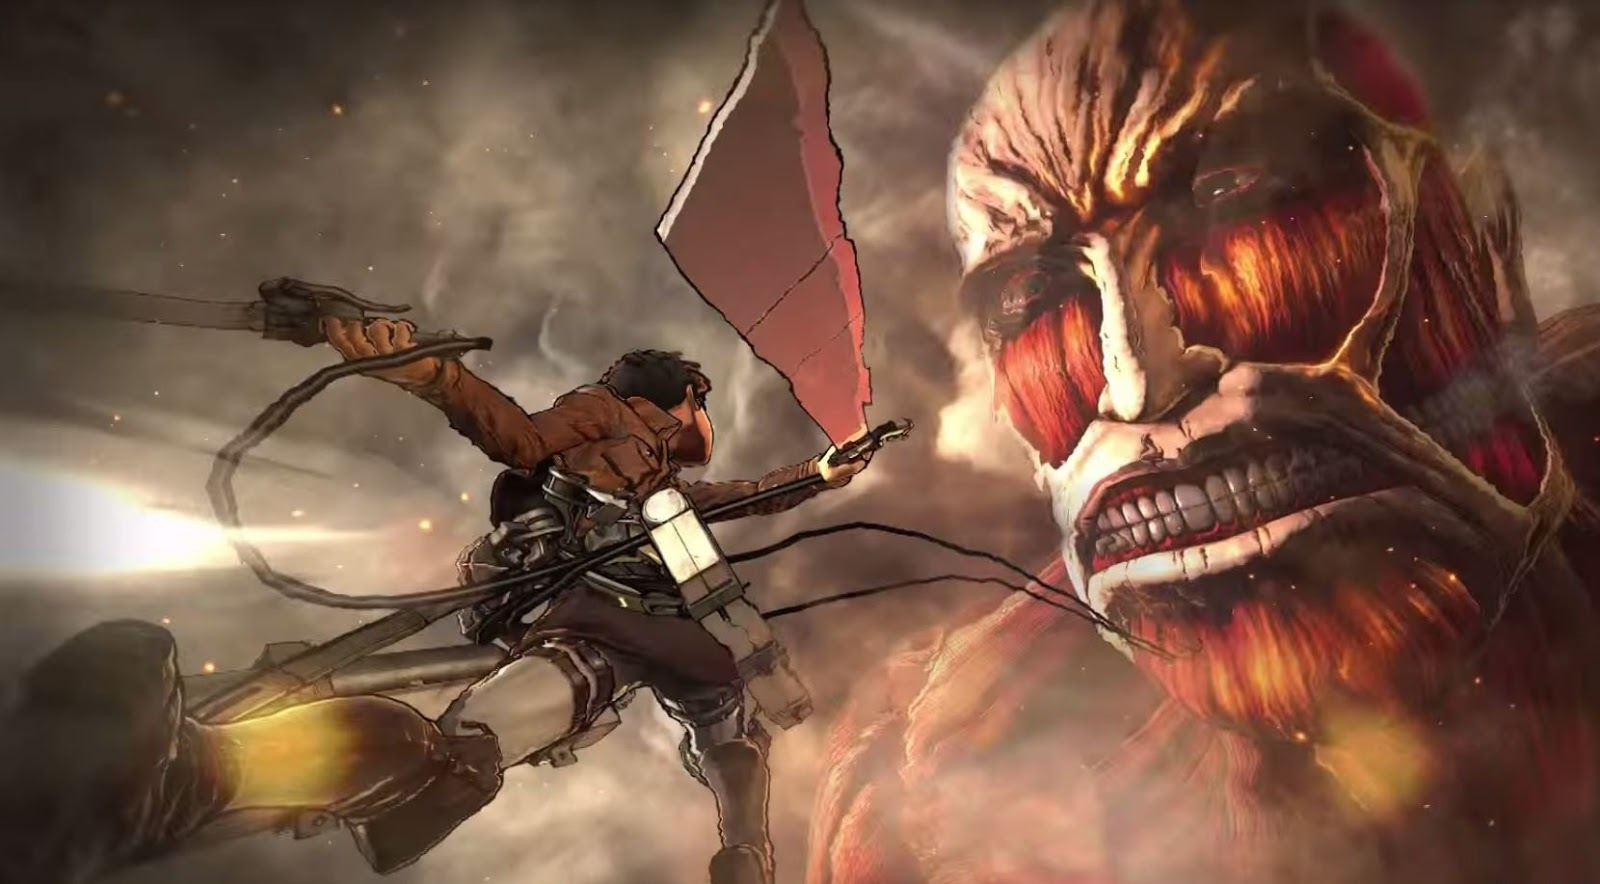 Download Game PS3 Attack on Titan PKG - rnbgame